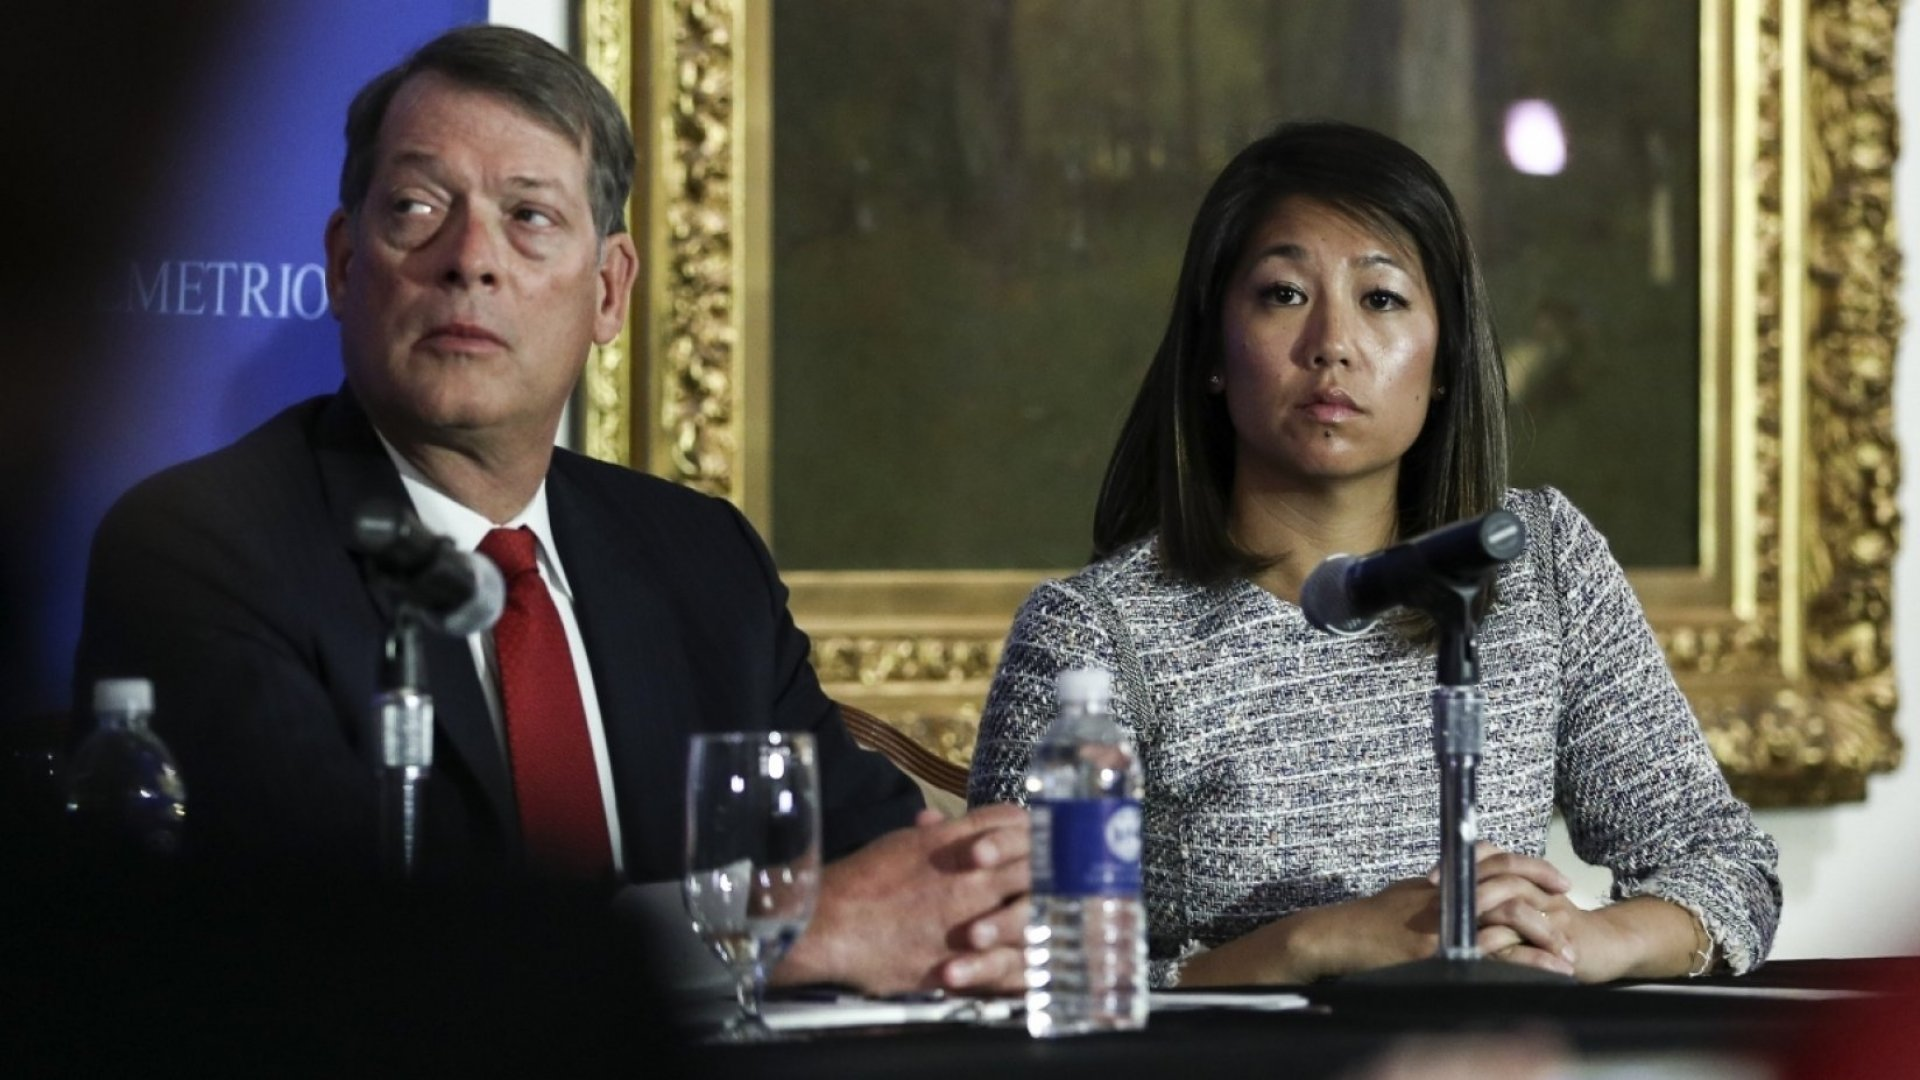 Crystal Dao Pepper (R), daughter of Dr. David Dao, pauses as she speaks about her father as she sits with her attorney Stephen Golan during a news conference on April 13, 2017